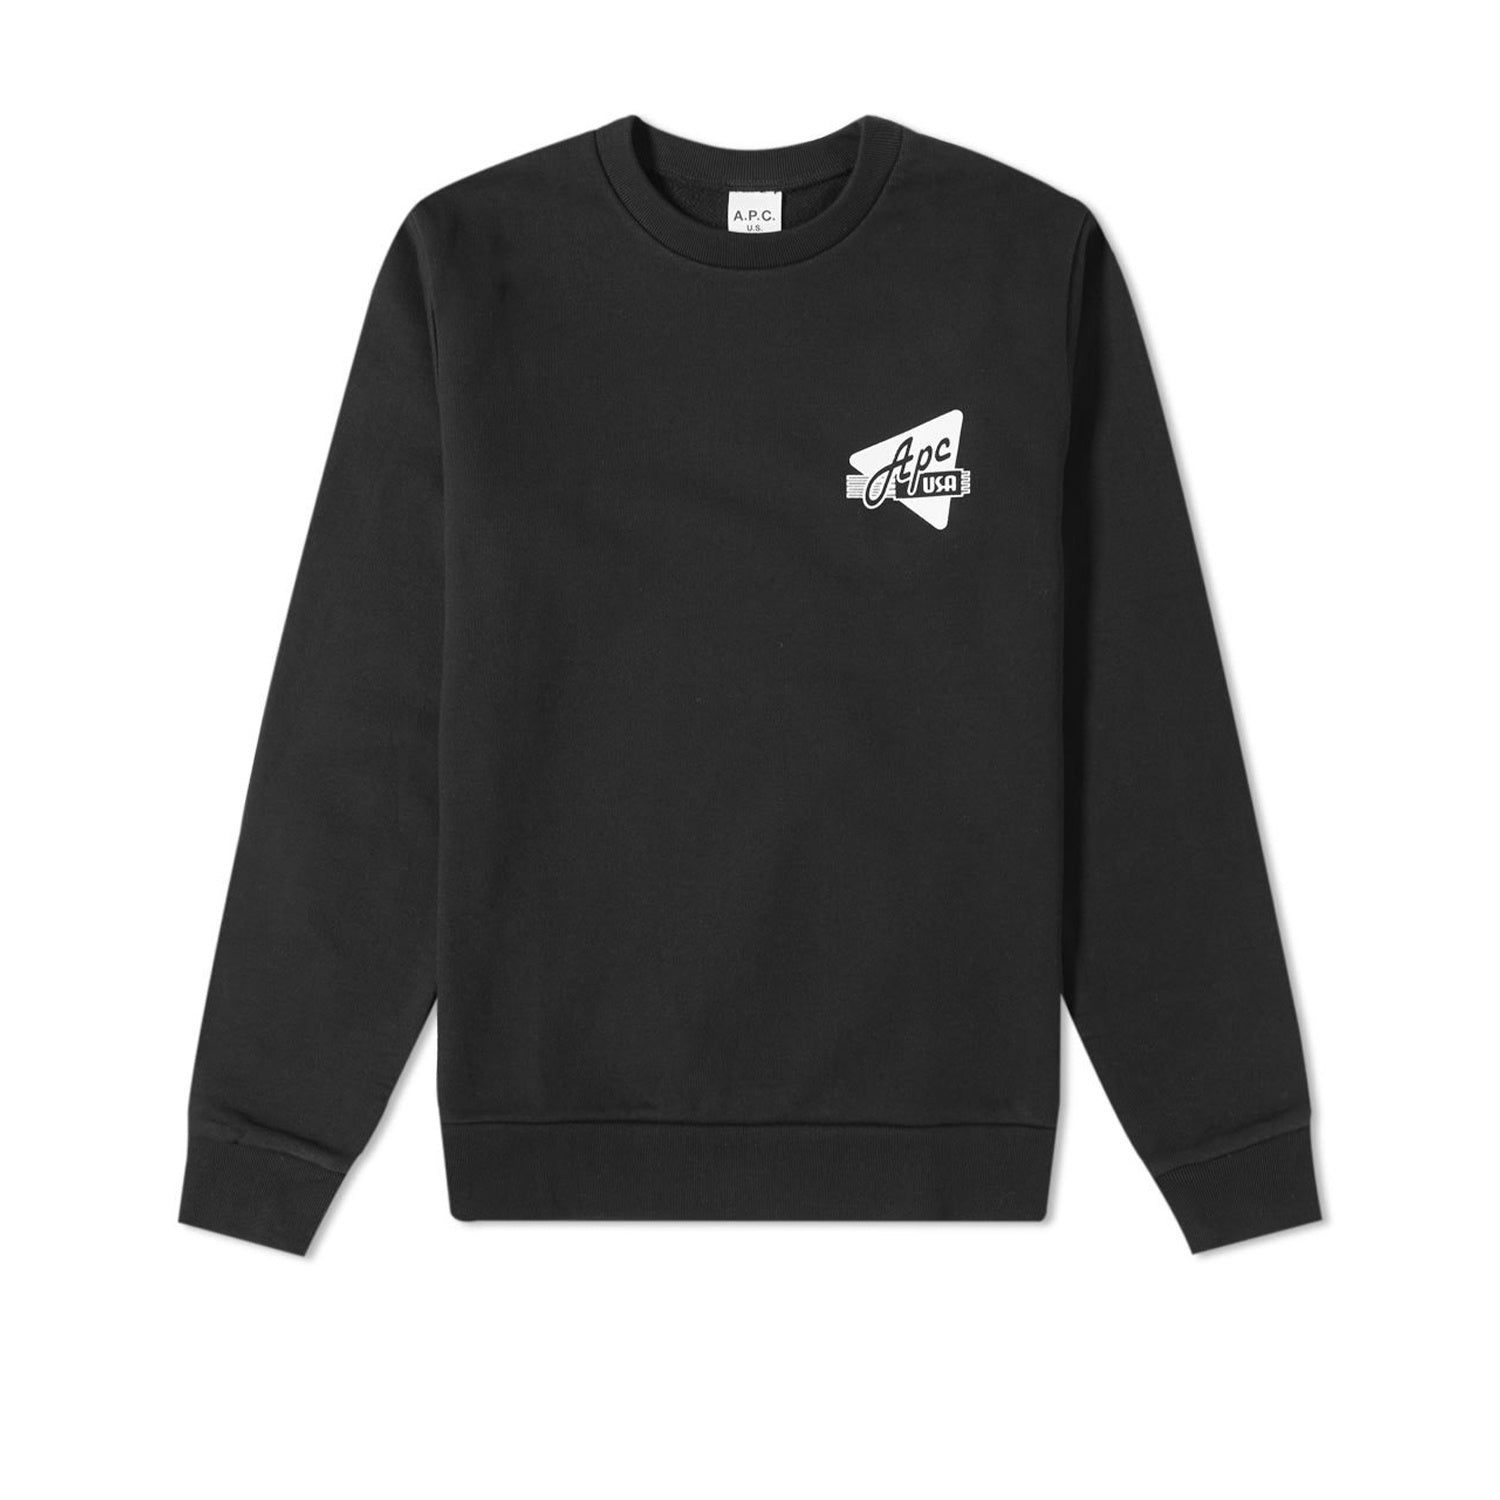 A.P.C. S20 Sweat Abe- Noir